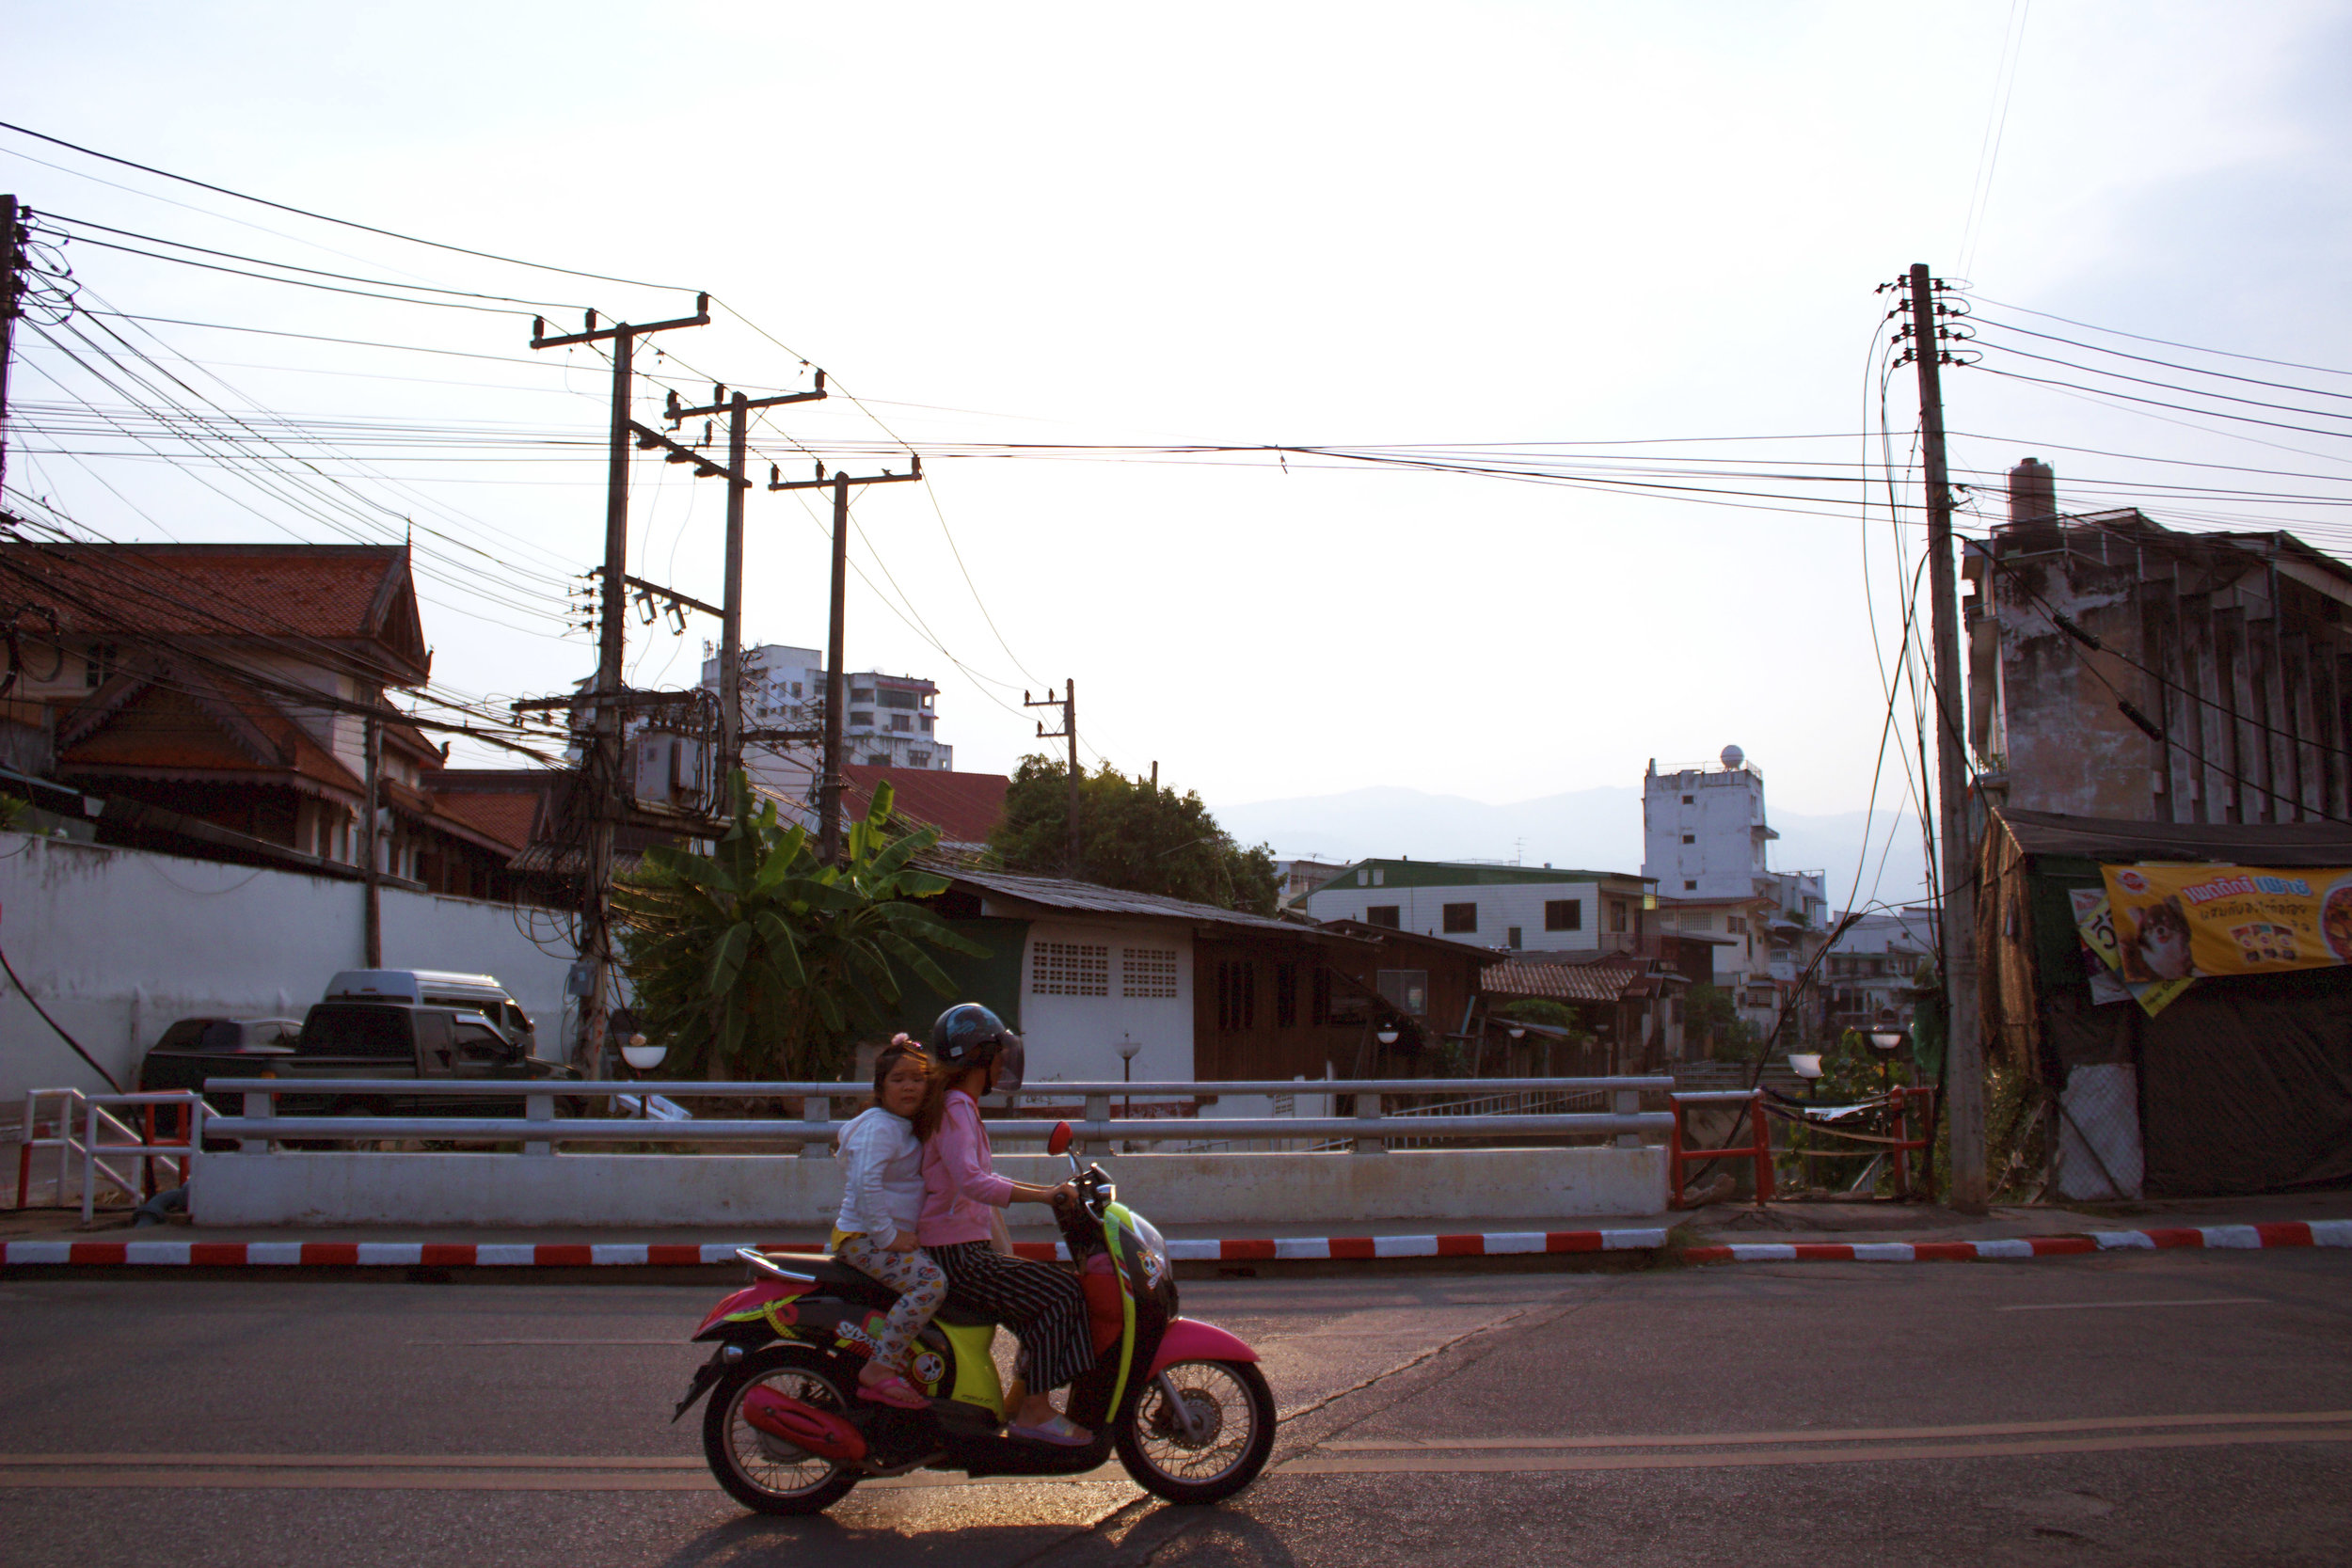 Late afternoon in Chiang Mai